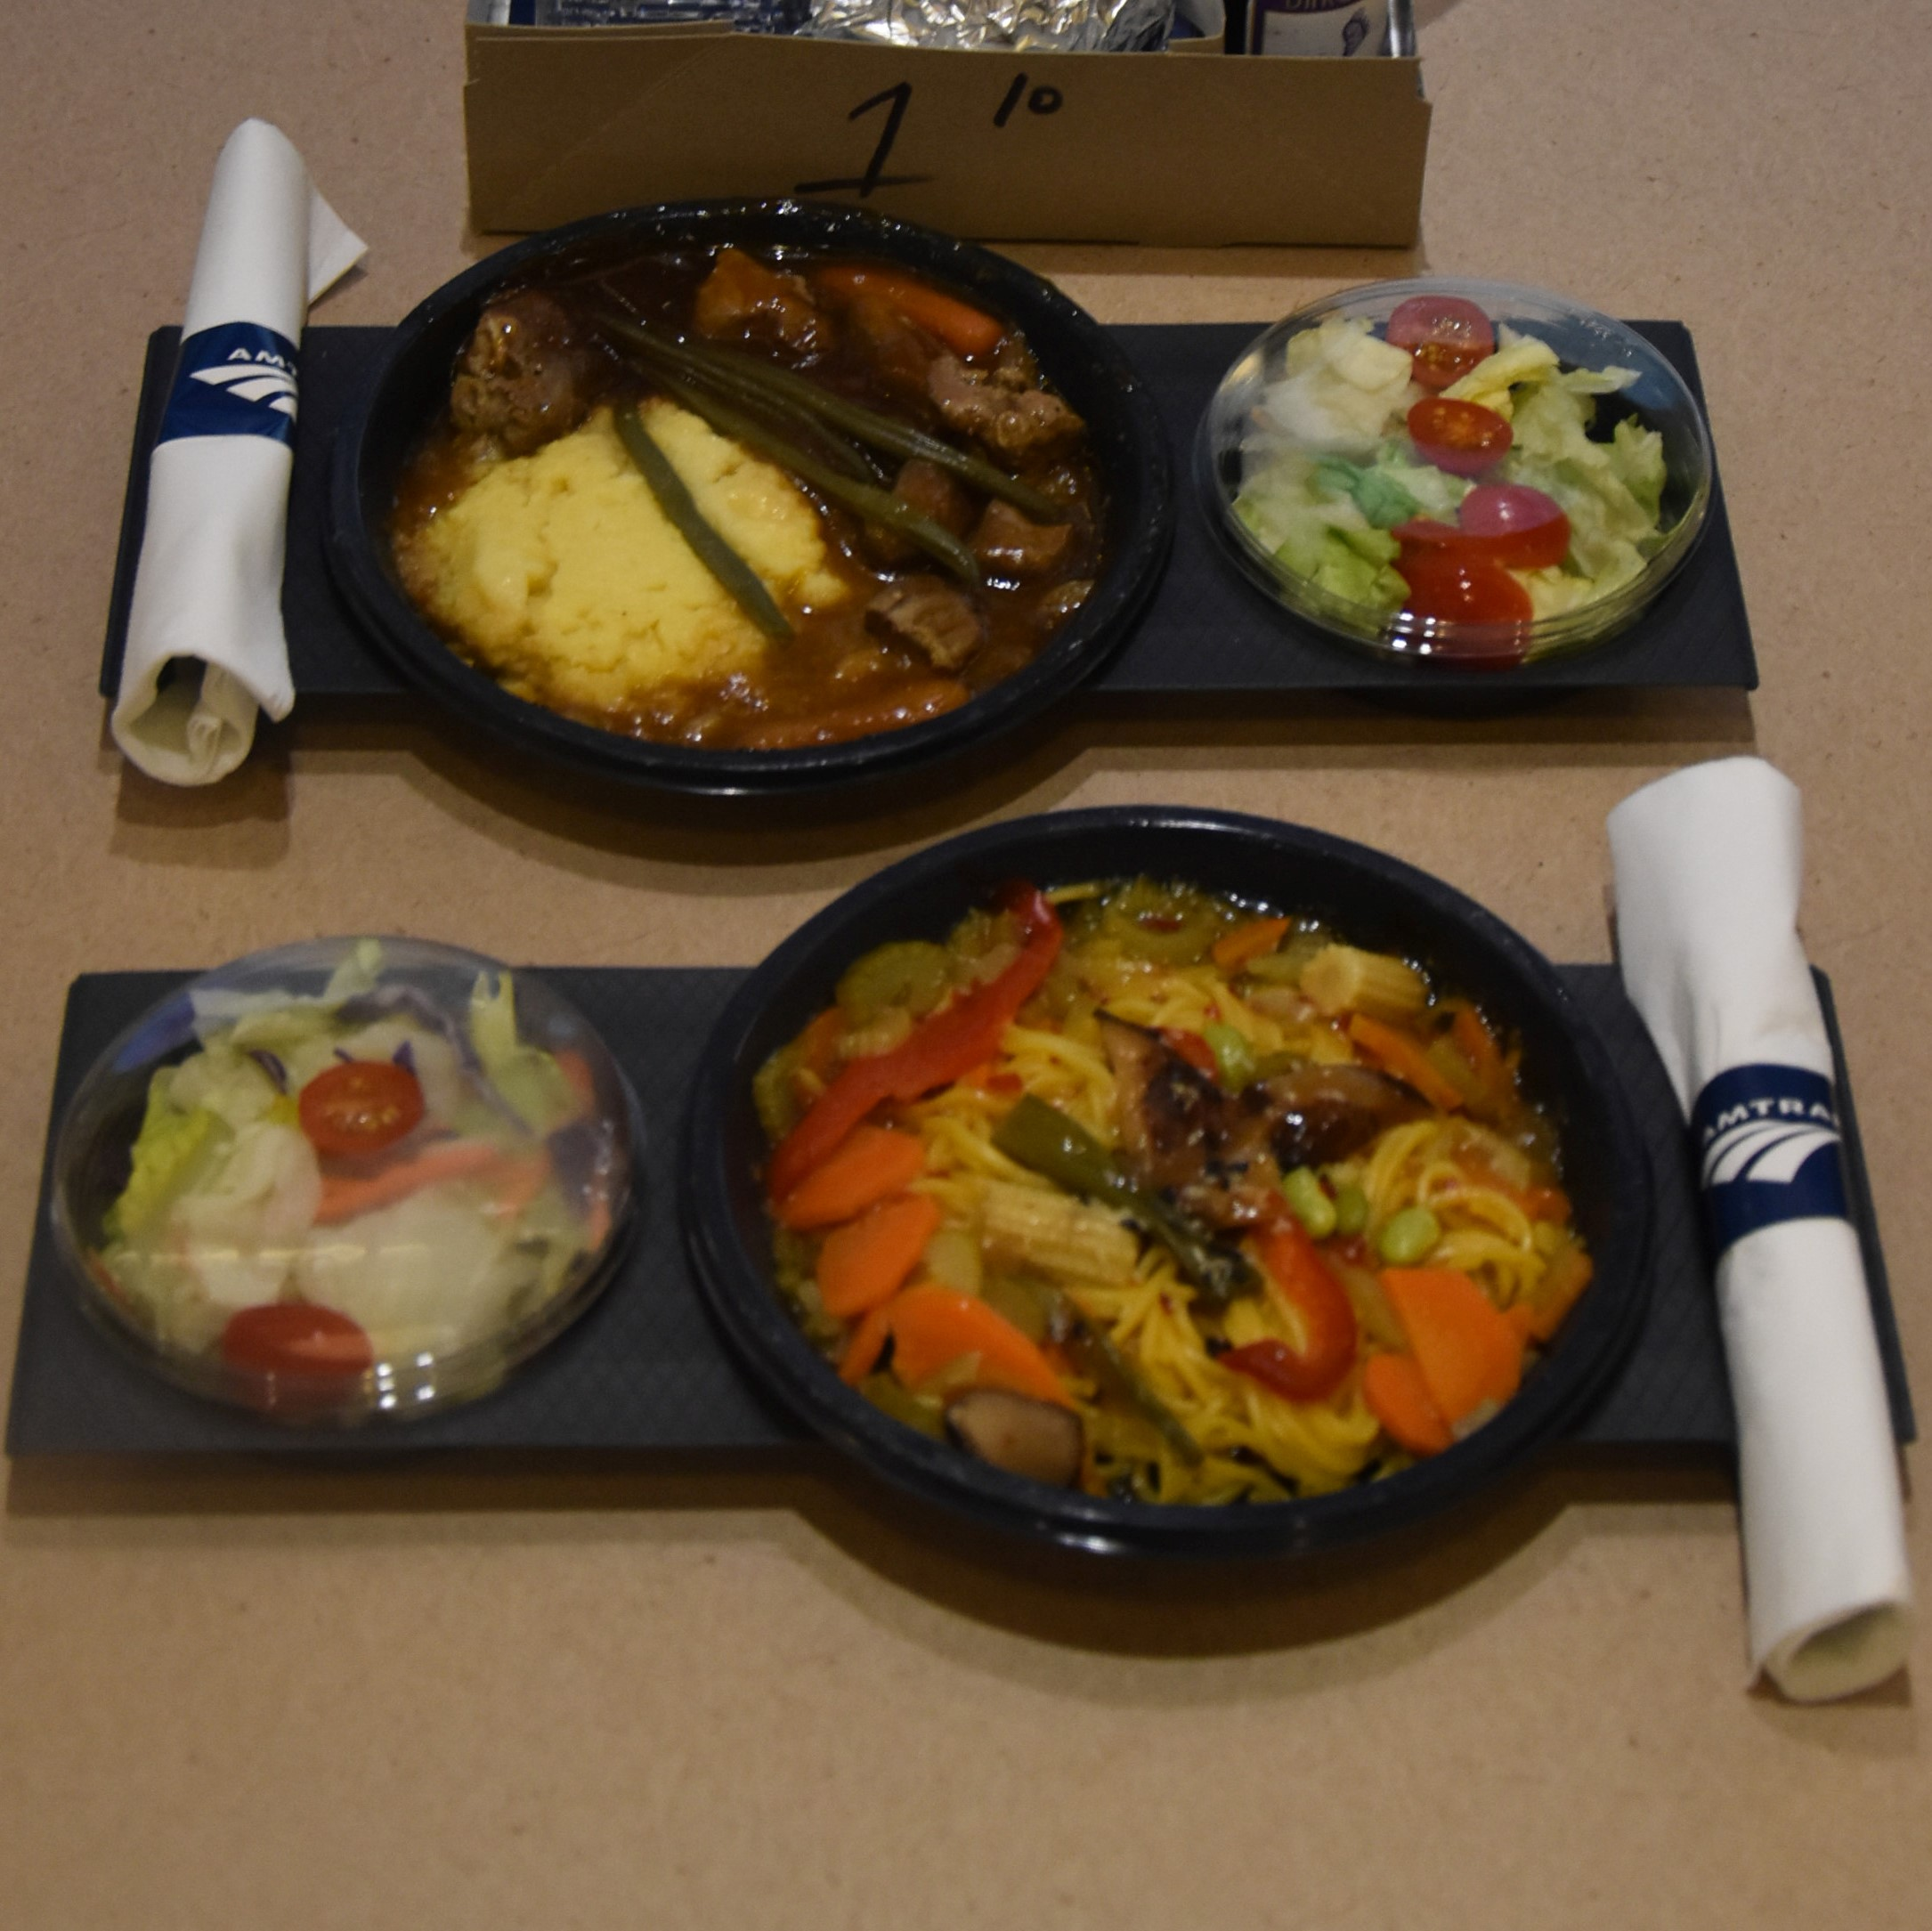 """Amtrak's new """"contemporary"""" menu on its Viewliner sleeper services: prepacked meals, delivered in a paper bag, a far cry from the full service dining cars it replaced. Bottom, my vegan Asian noodle bowl, and top, Amanda's red wine braised beef."""